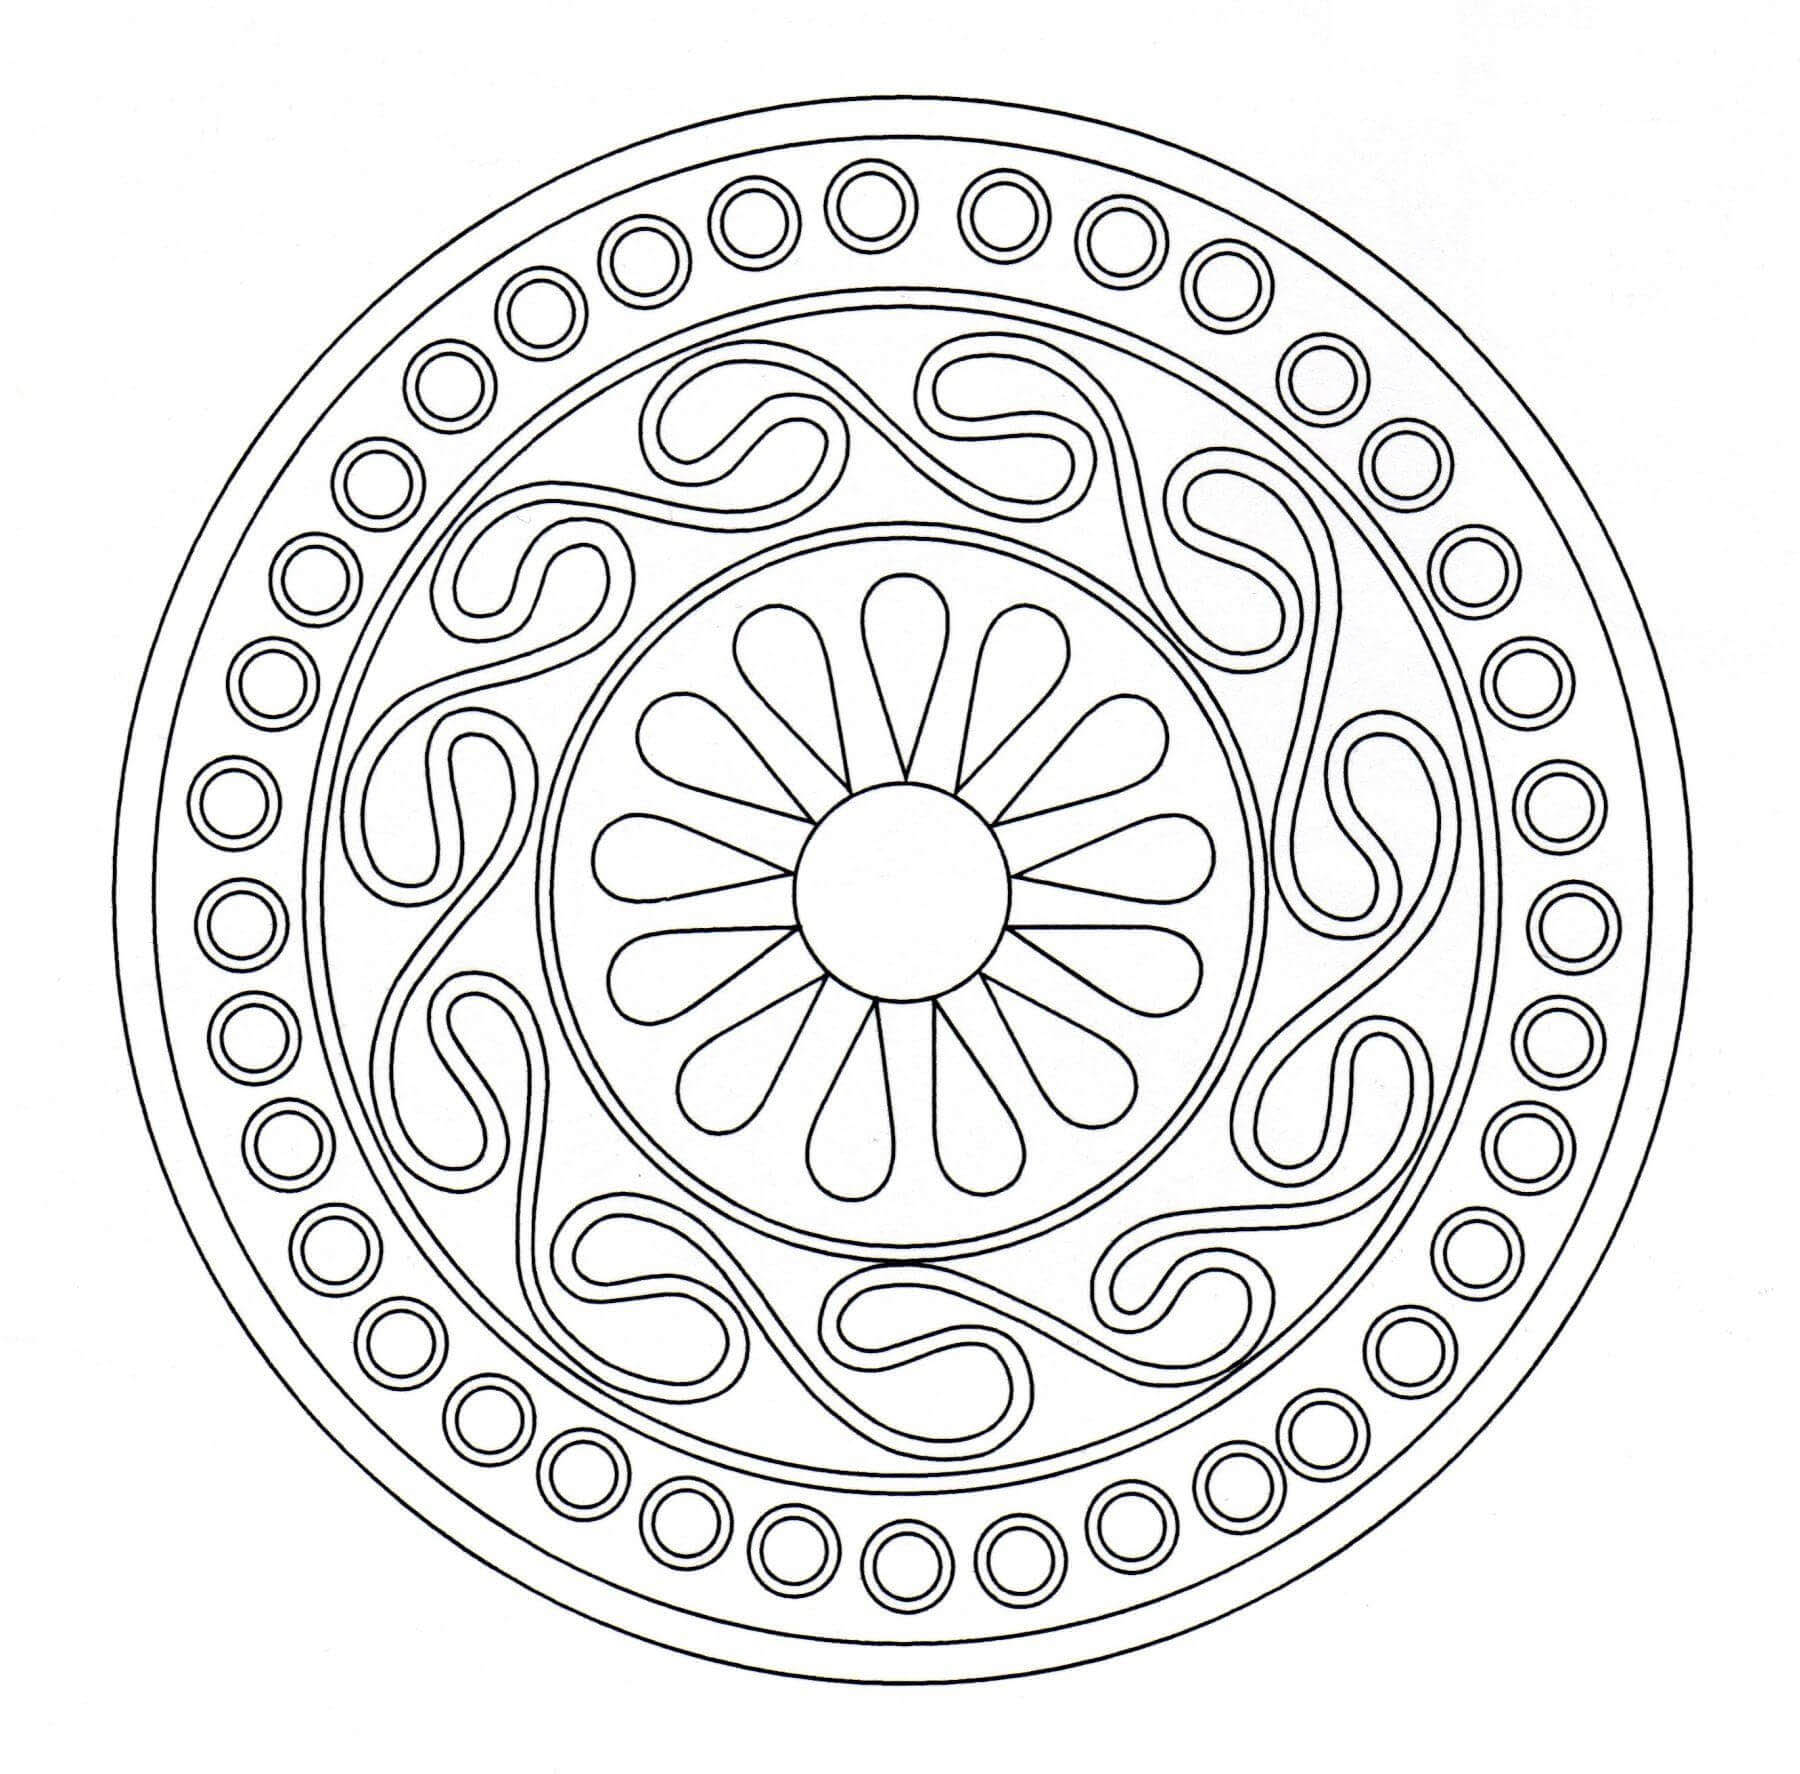 Details relatively simple to color, for a Mandala coloring page very unique and of high quality. You must clear your mind and allow yourself to forget all your worries and responsibilities.